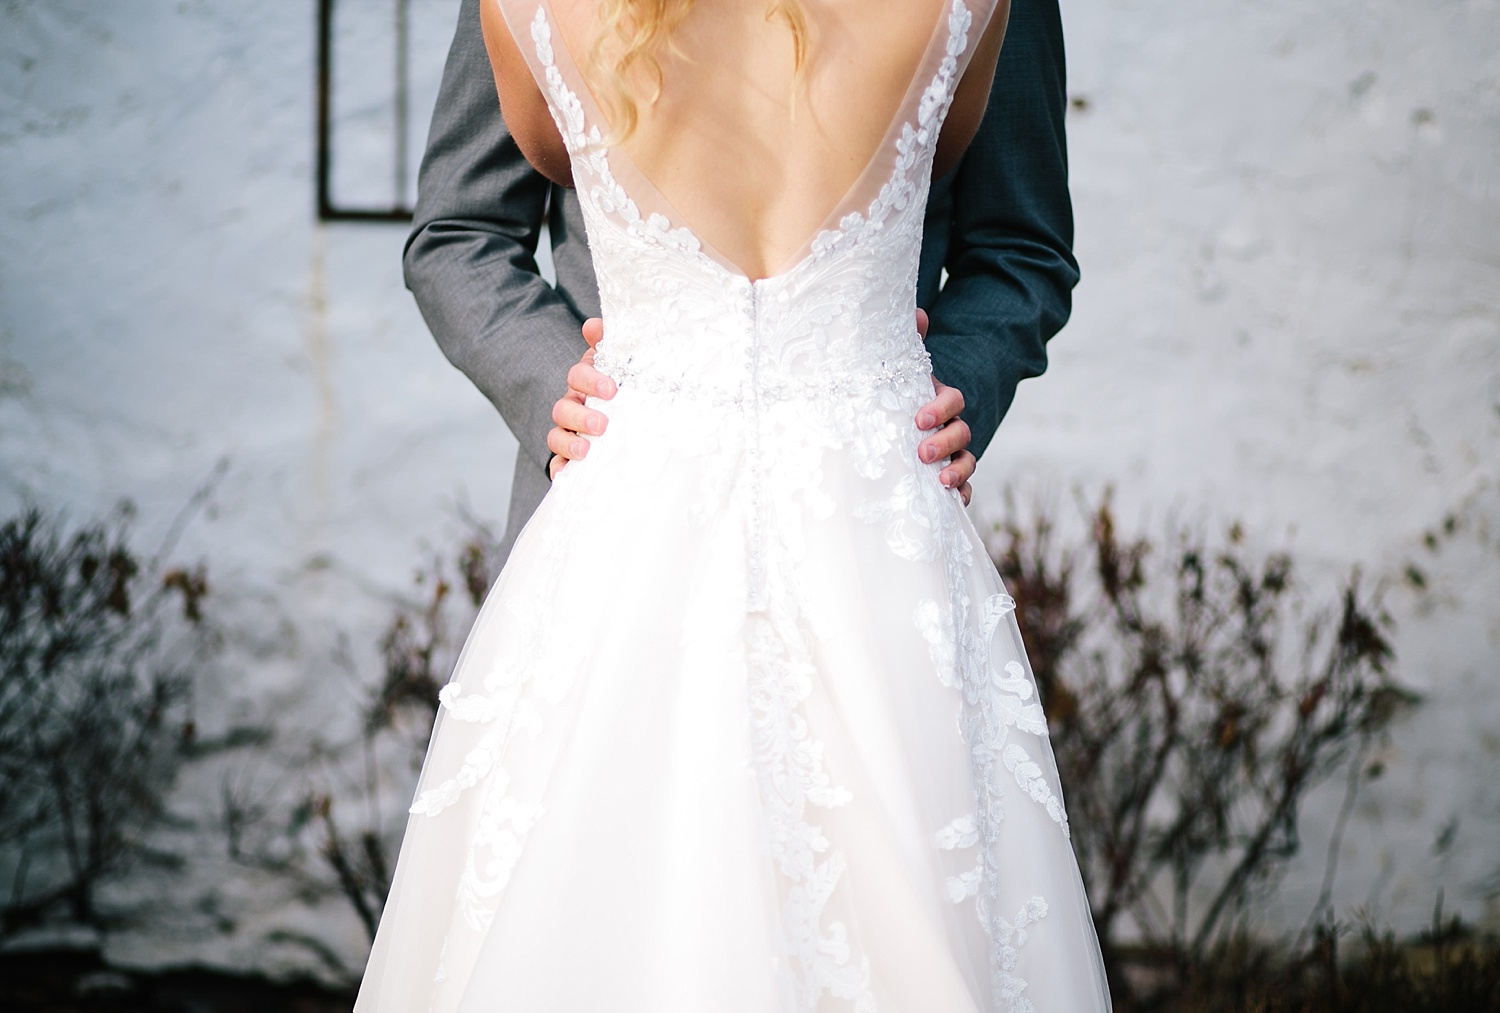 jessdavid_barnonbridge_phoenixville_winter_wedding_image_045.jpg